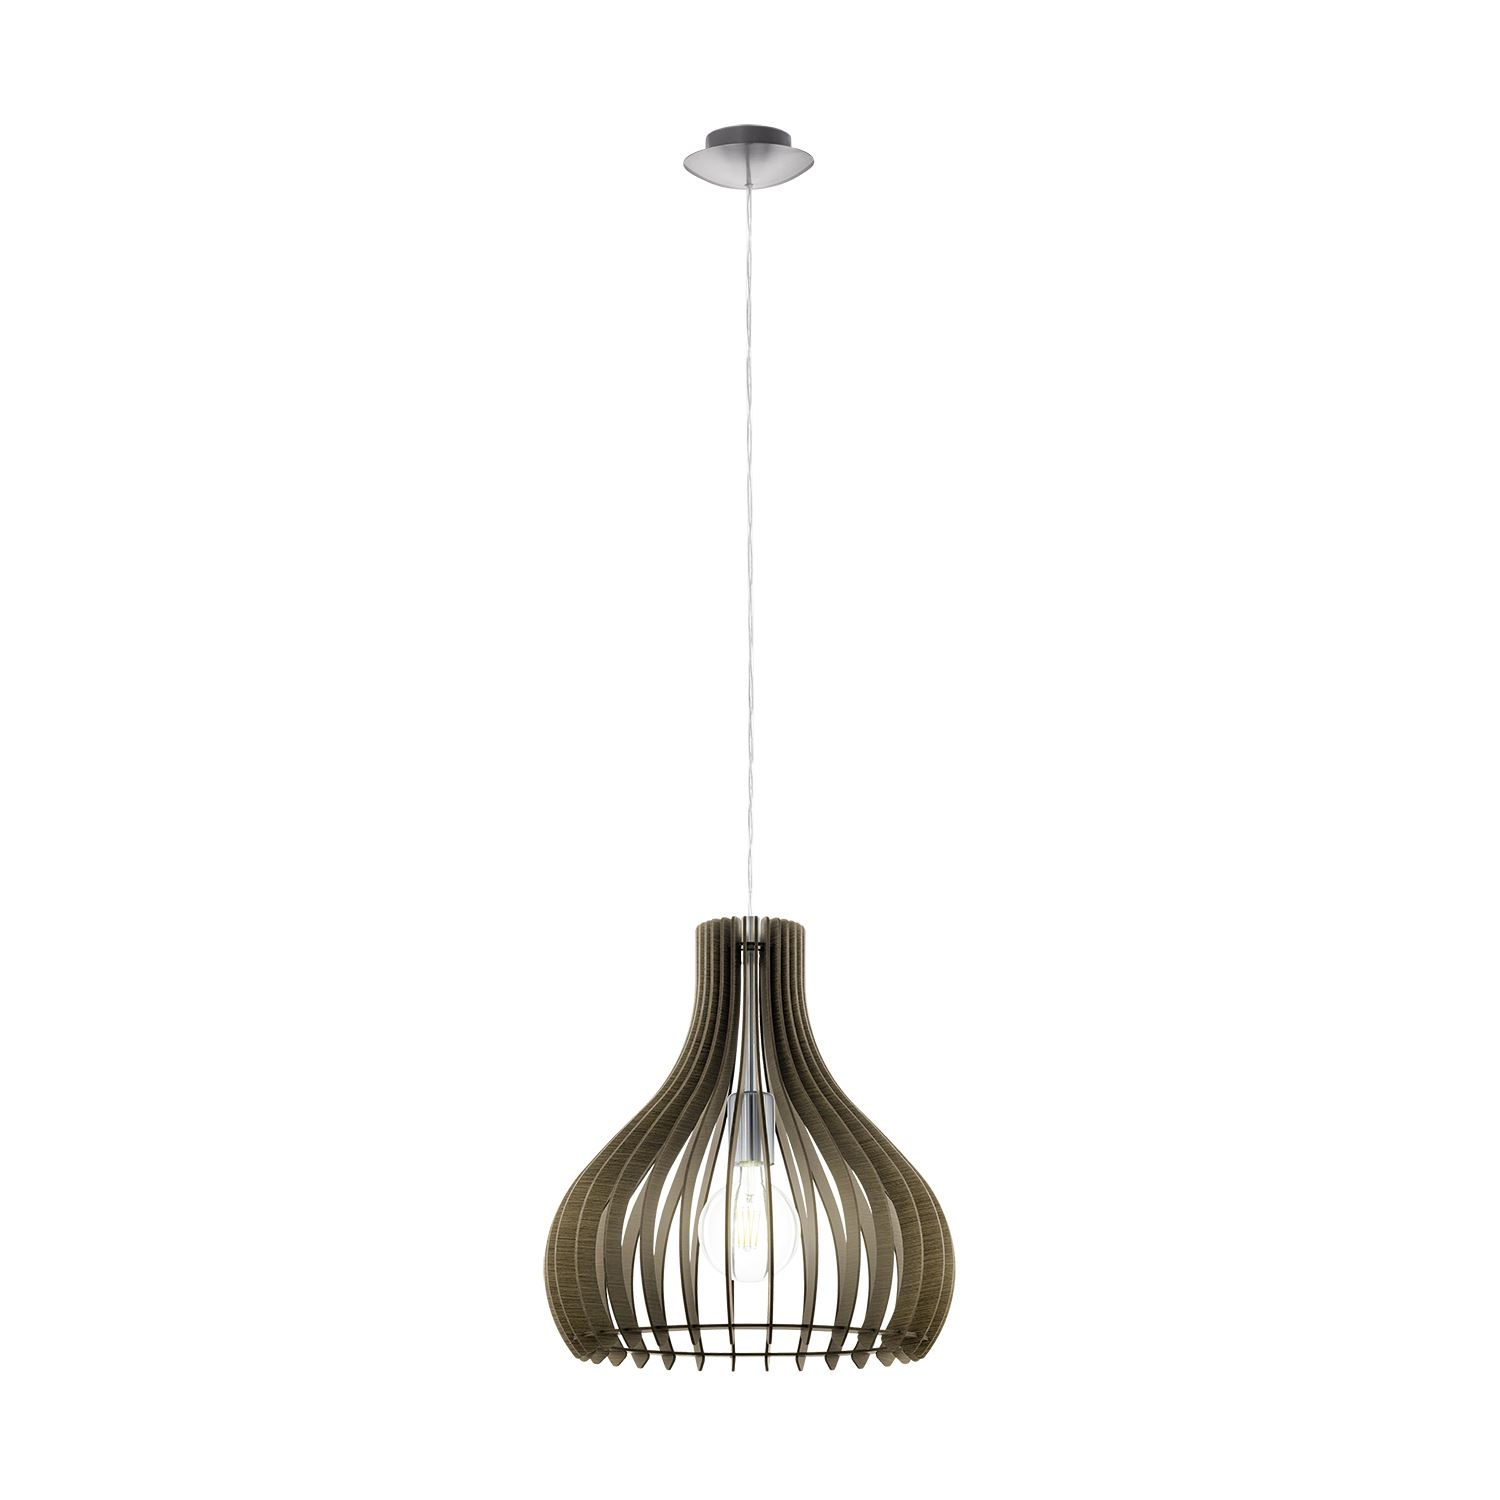 Tindori Satin Nickel 1 Hanging Light Wood Brown Shade